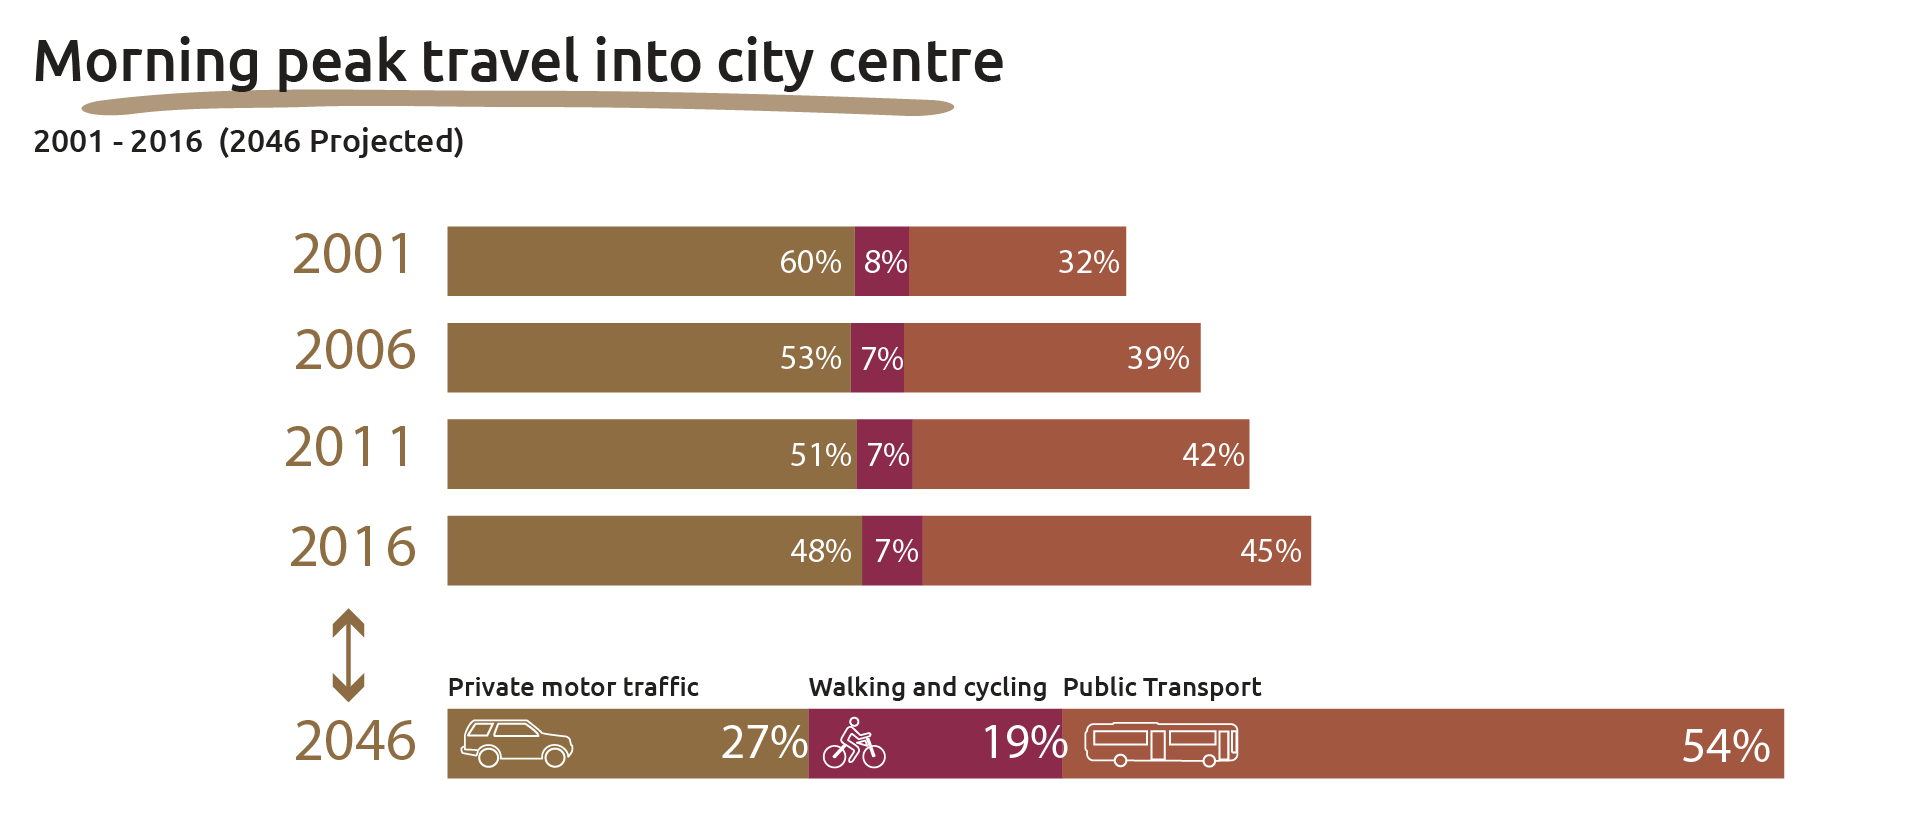 Graph showing the morning peak travel into city centre from 2001 to 2016 and projected for 2046. This is broken down by percentage between private motor traffic, walking and cycling, and public transport.